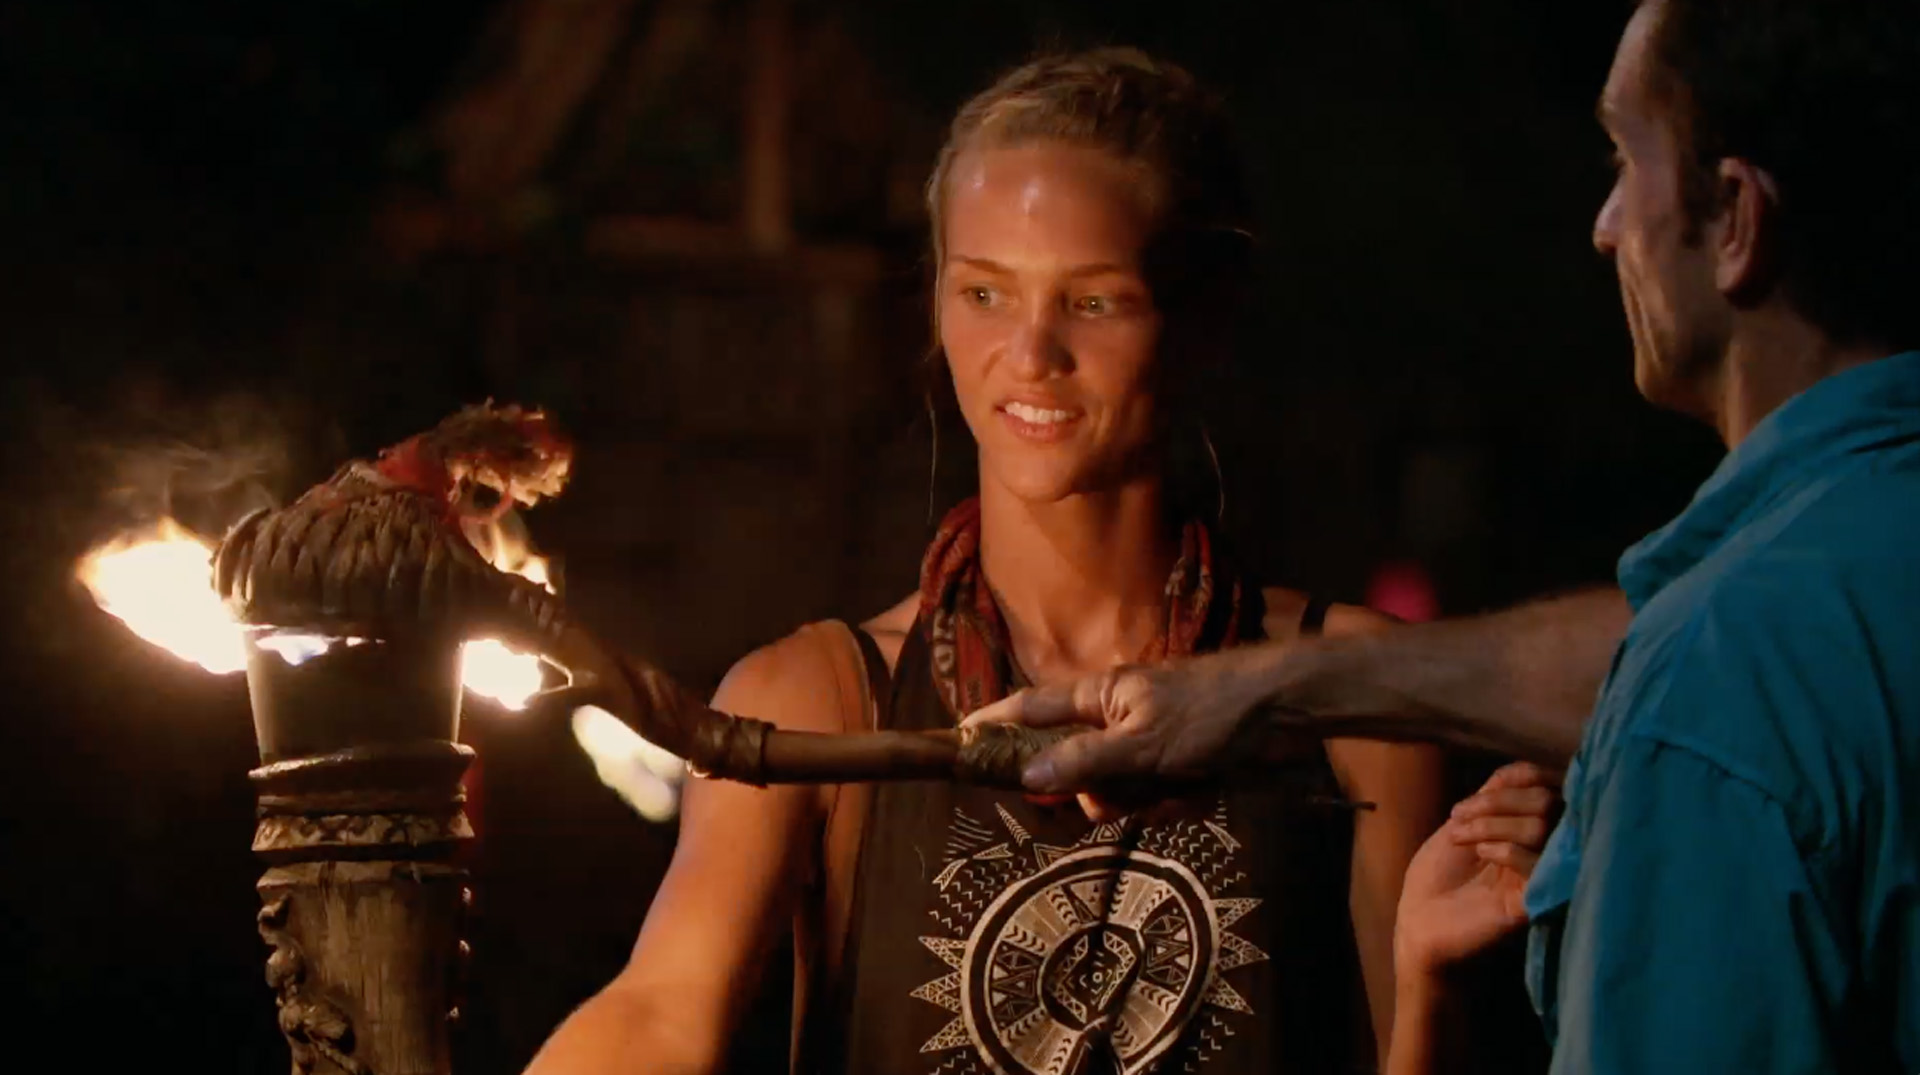 This week's Tribal is a wish come true for Scot and Jason.